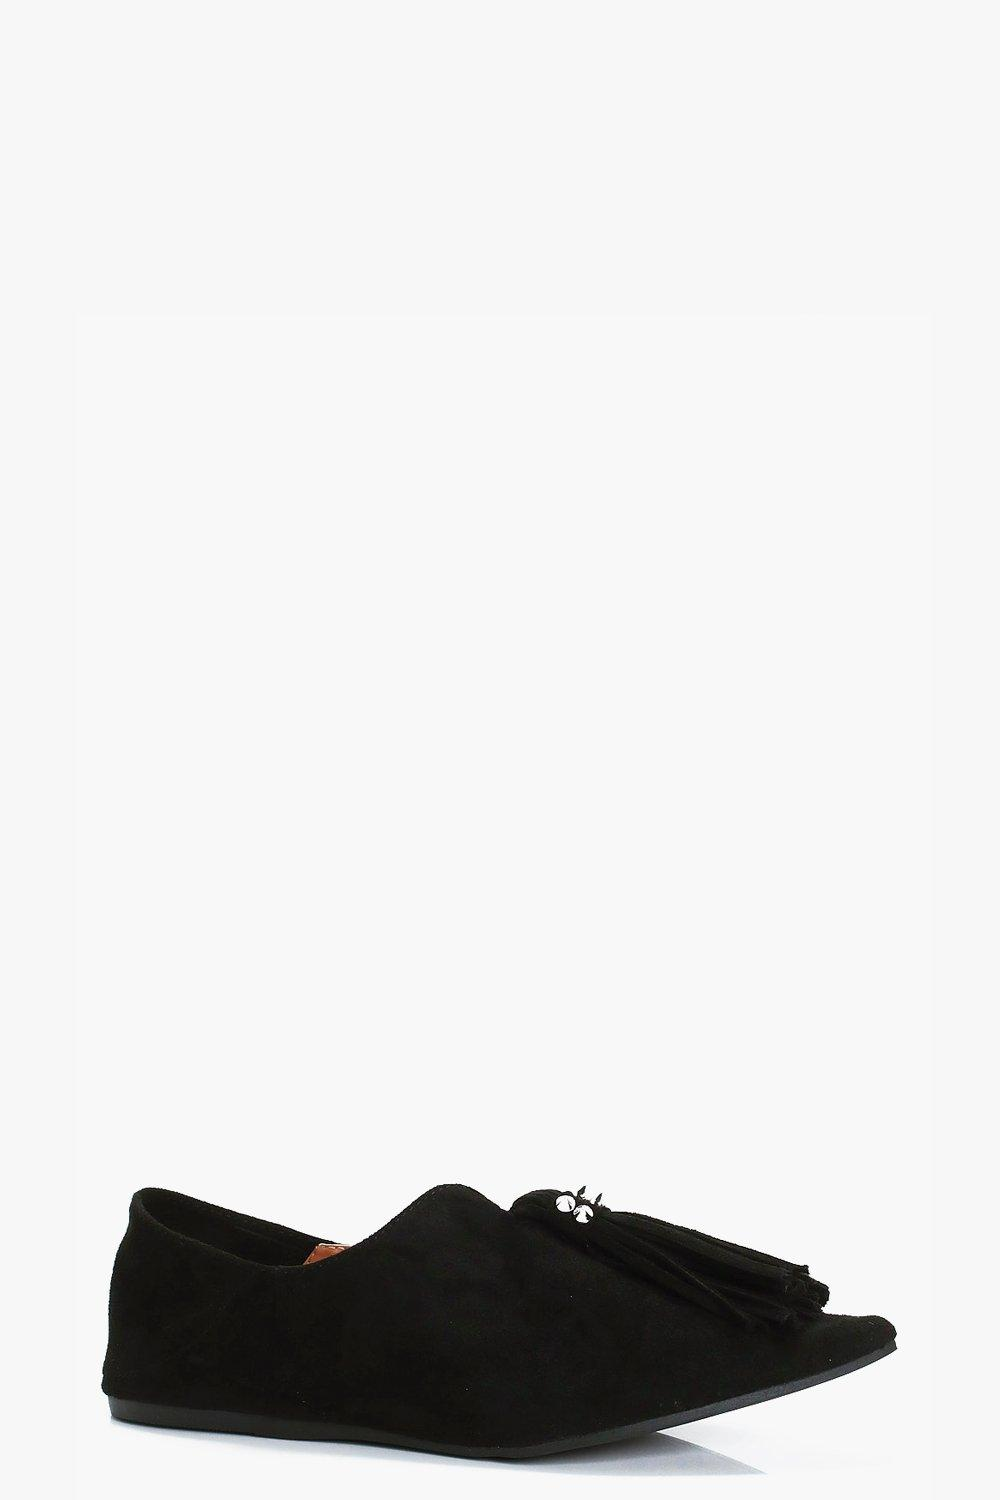 Boohoo-Macy-Chaussures-Plates-Pointues-A-Pampilles-pour-Femme